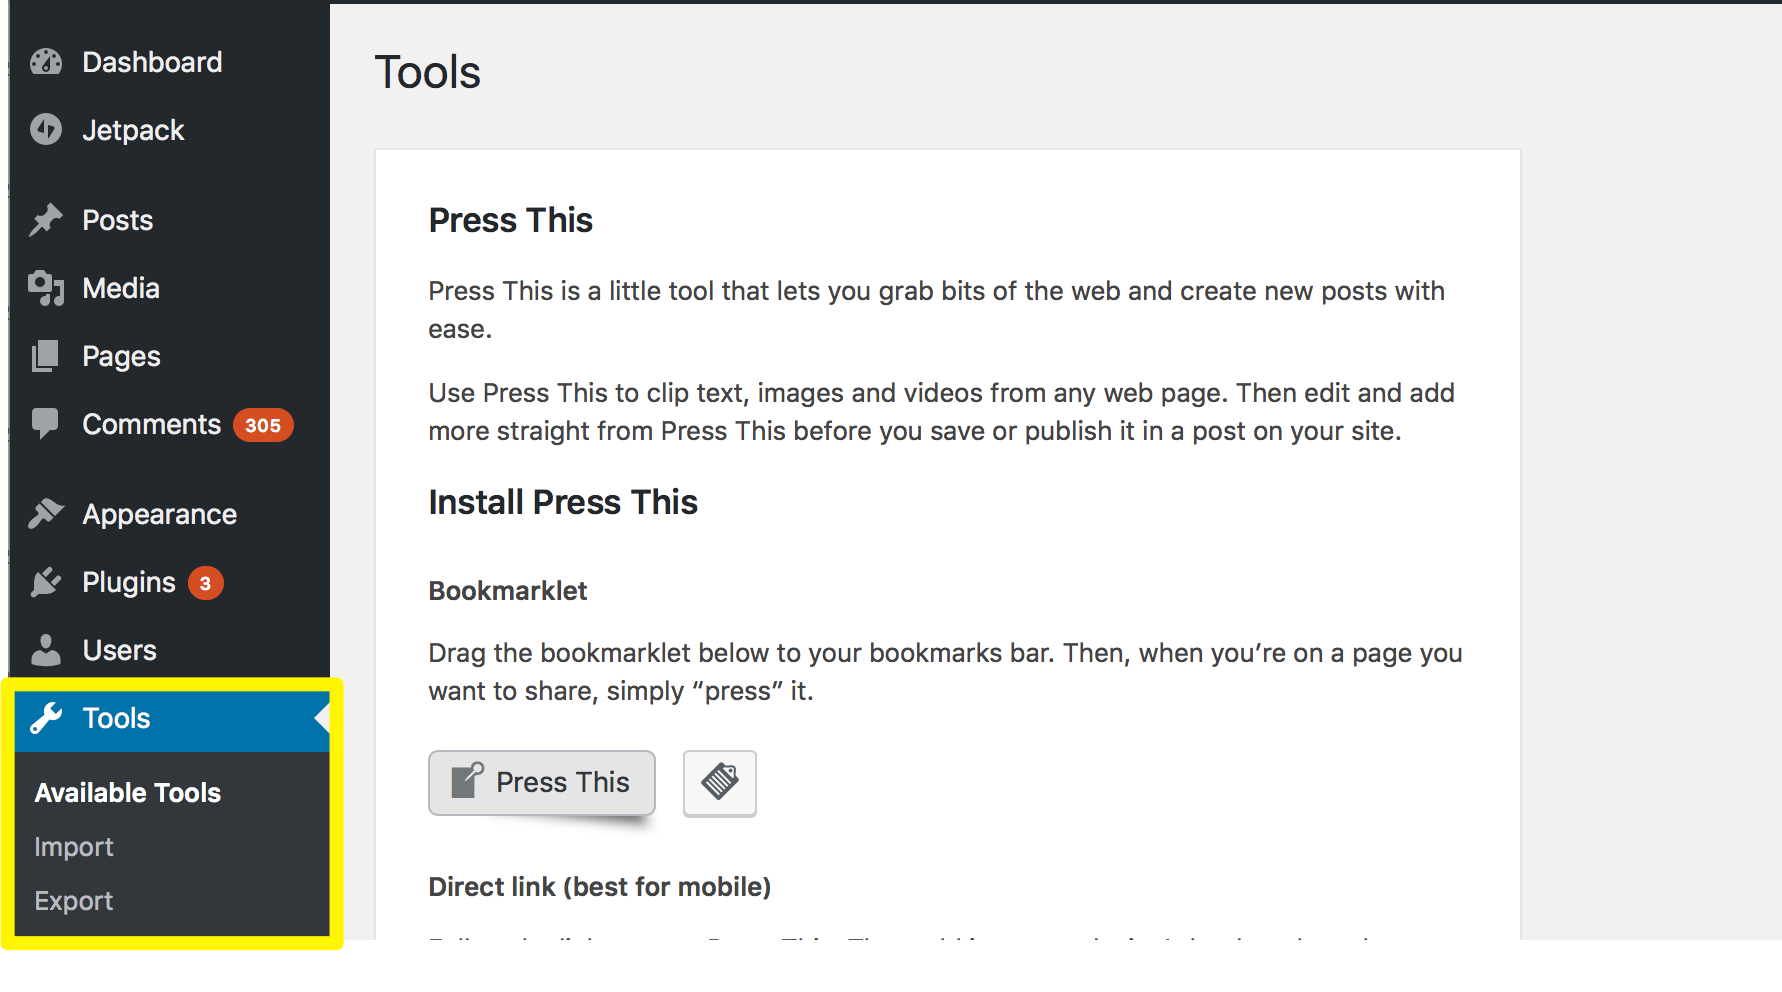 The 'Tools' section of the WordPress Dashboard.